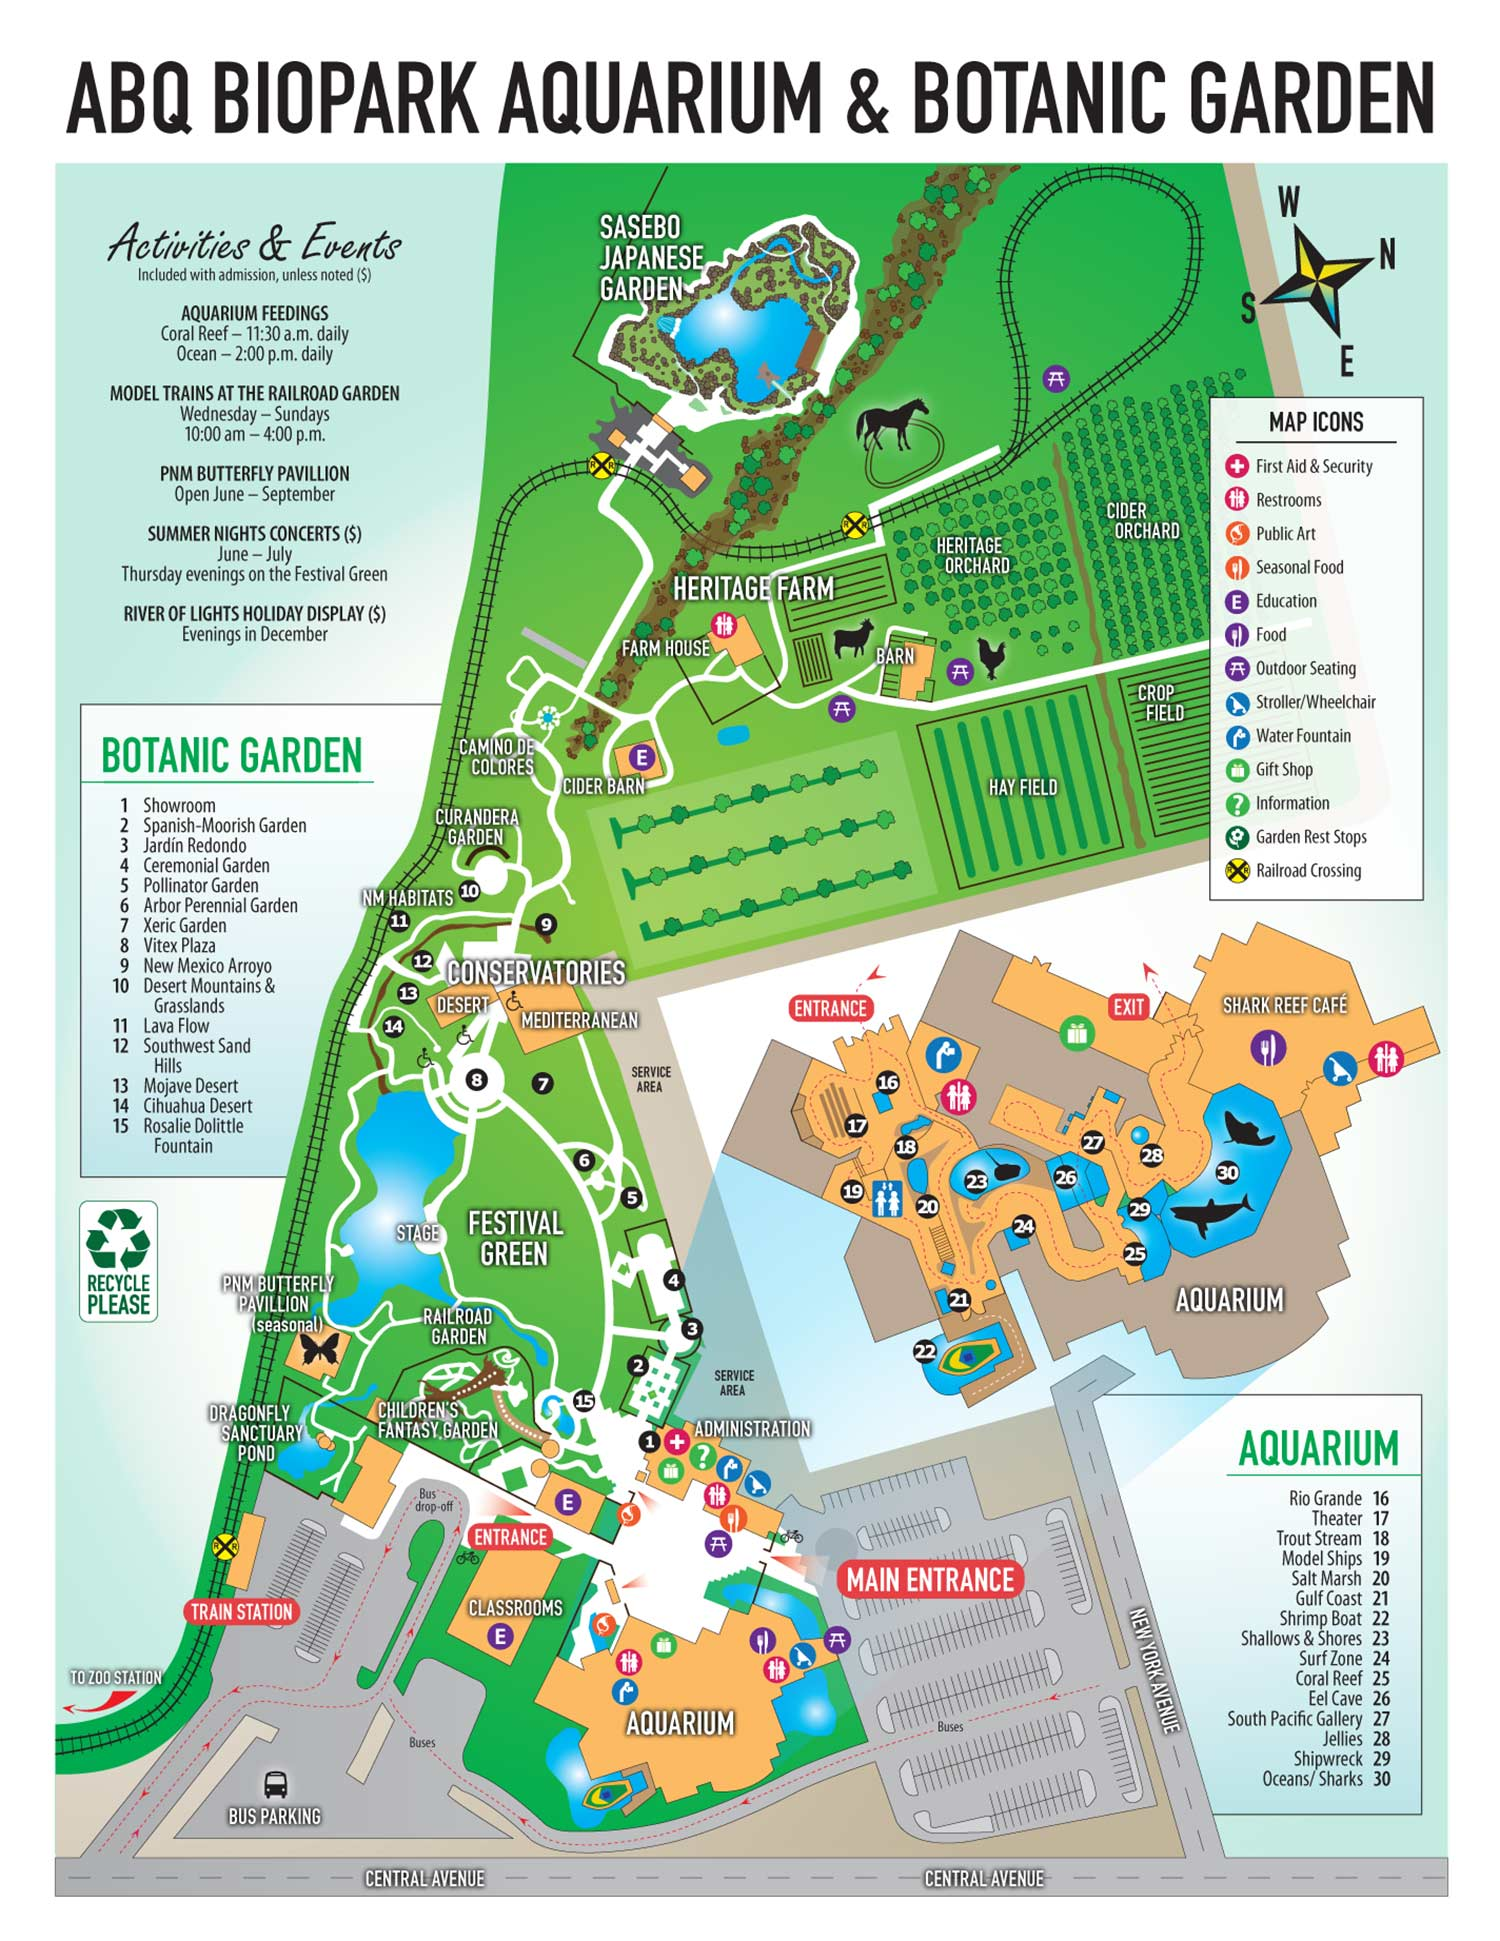 Biopark Aquarium and Botanic Garden Map